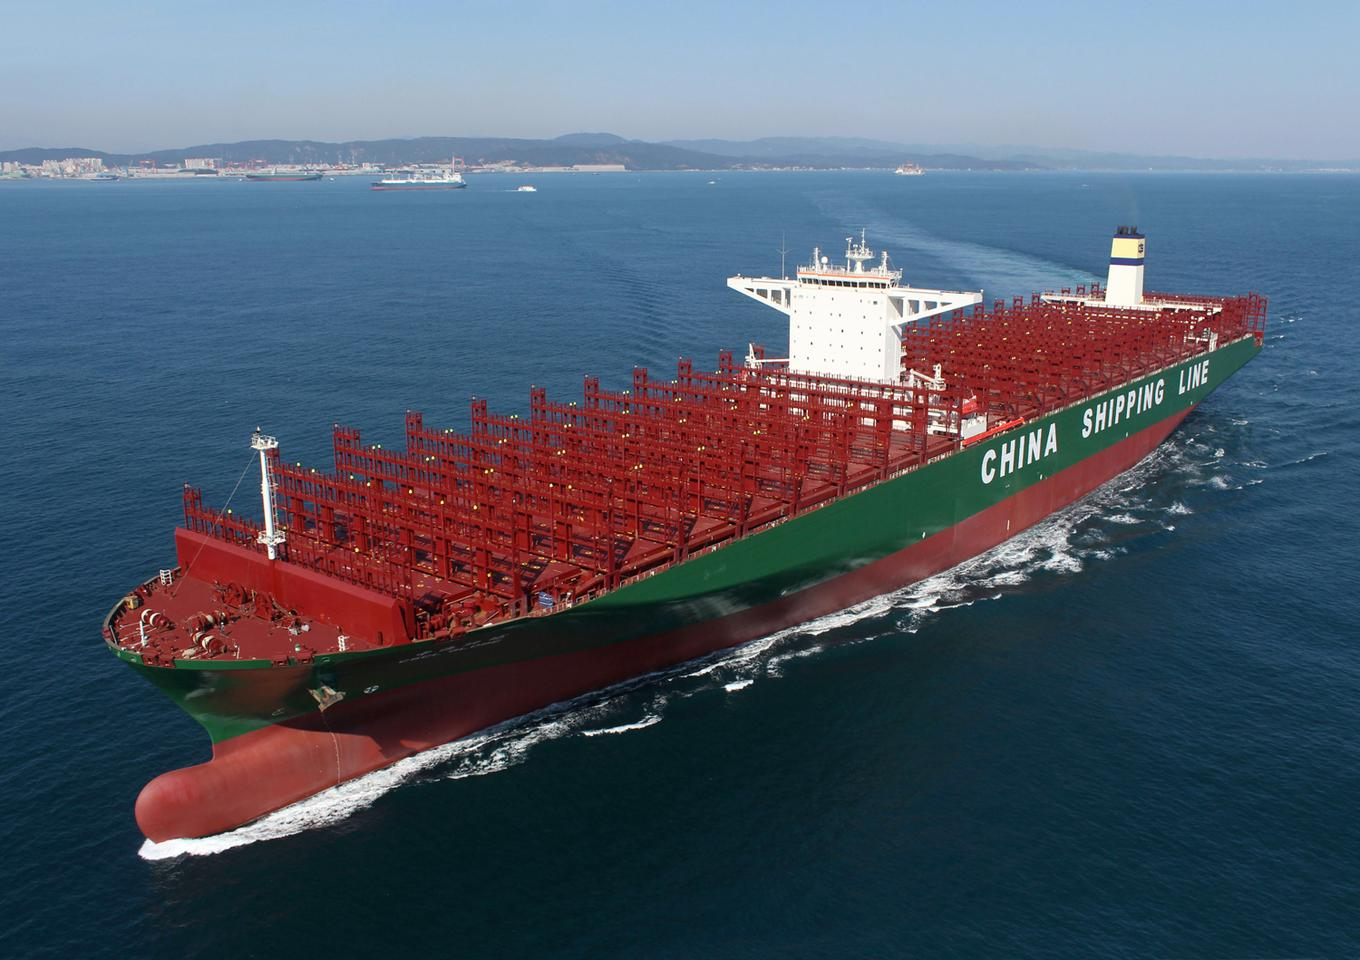 The CSCL Globe, shown here on sea trials, has embarked on its maiden voyage (Photo: HHI)